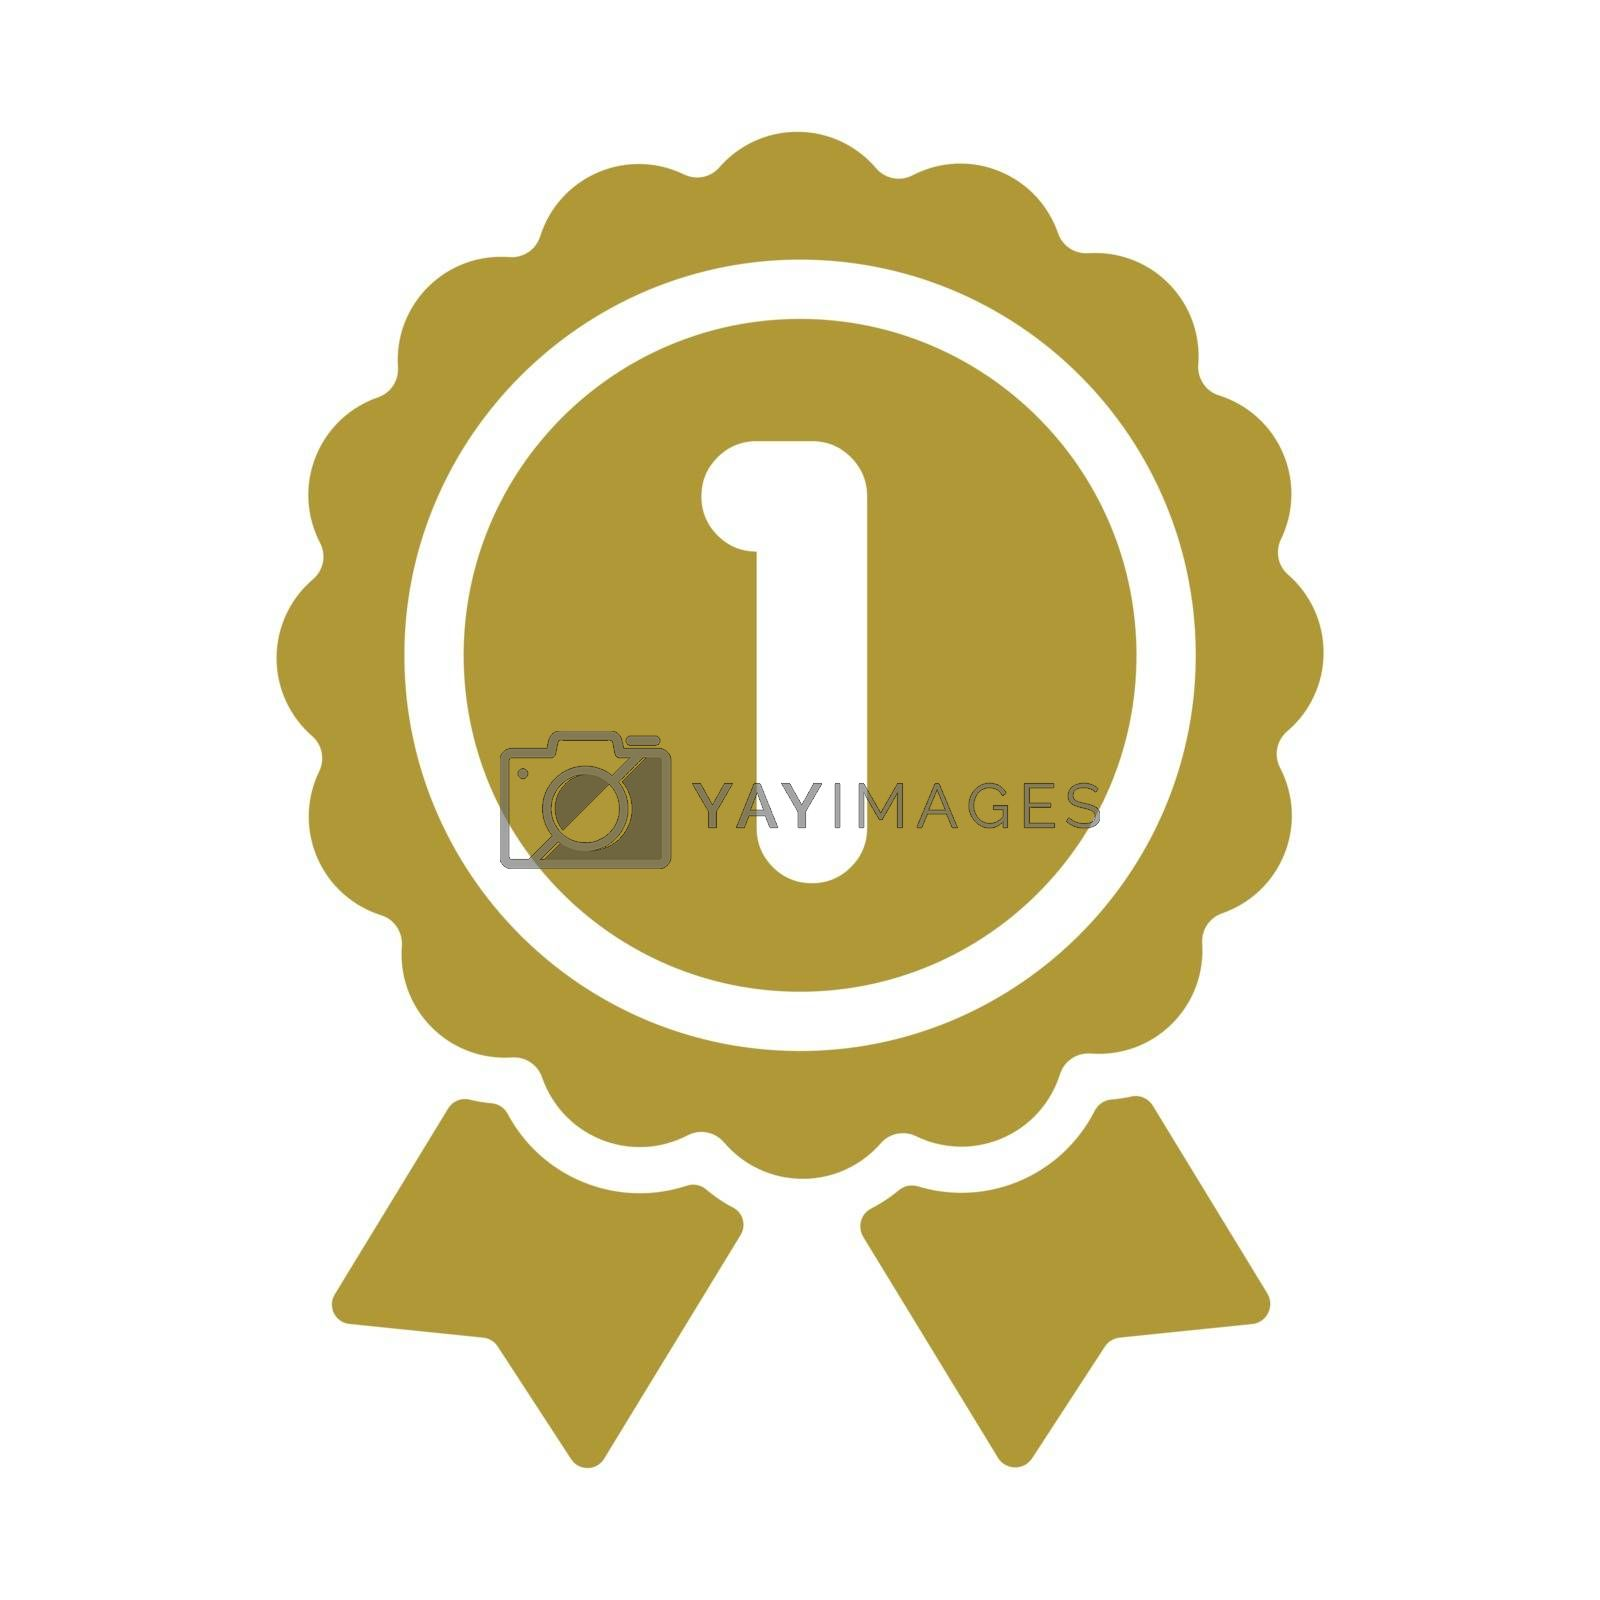 ranking medal icon illustration. 1st place (gold ).